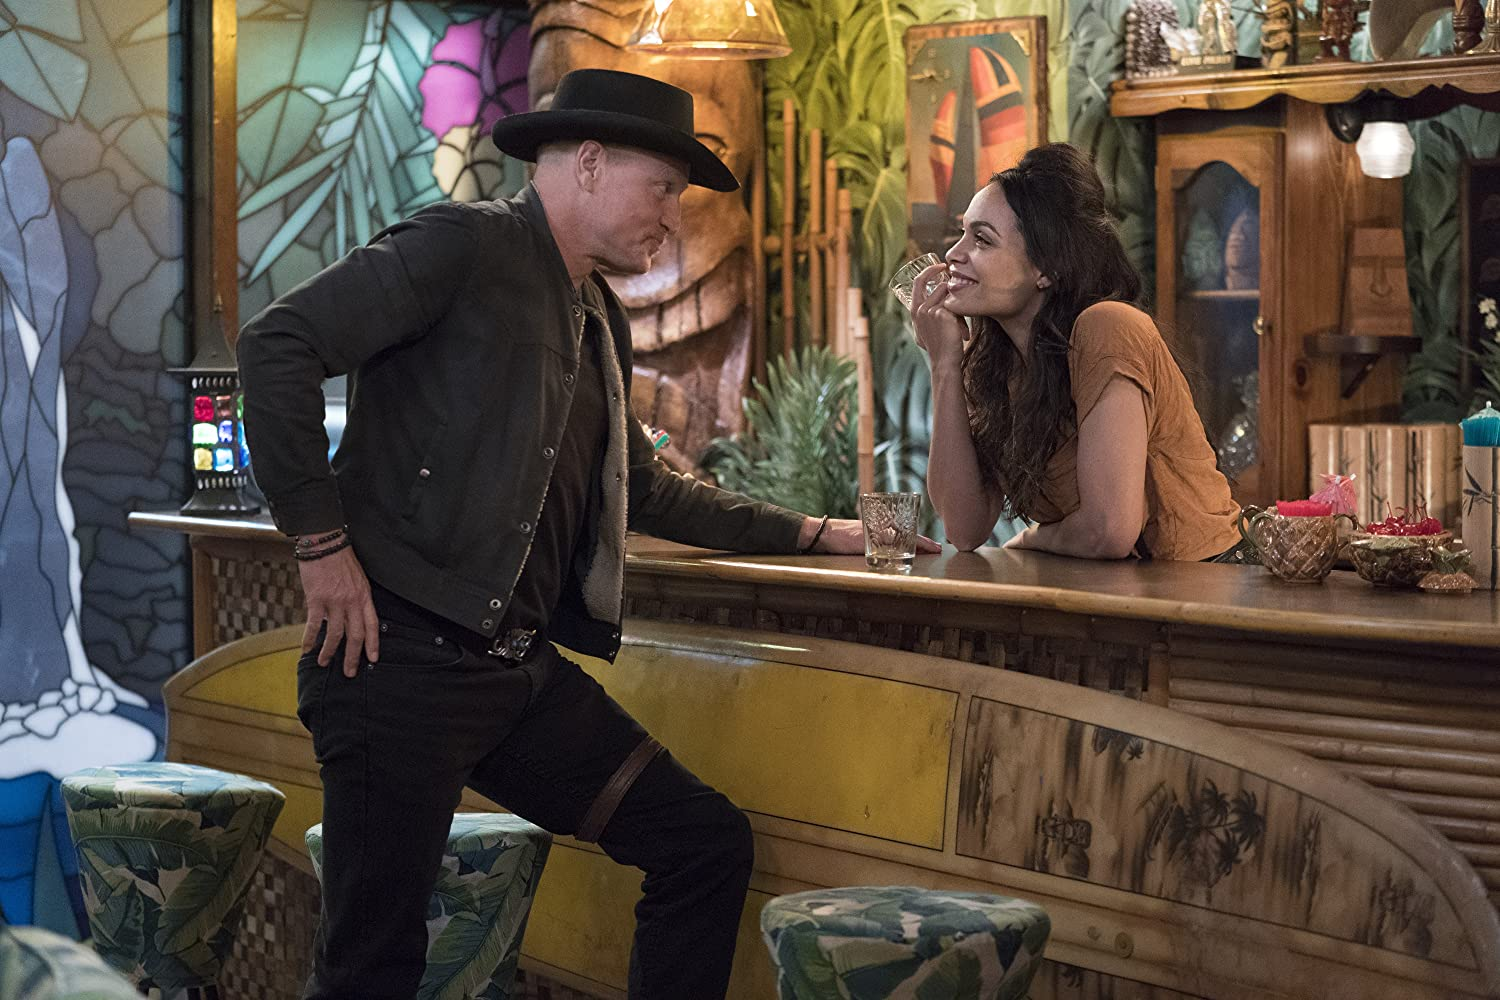 Woody Harrelson and Rosario Dawson in Zombieland: Double Tap (2019)